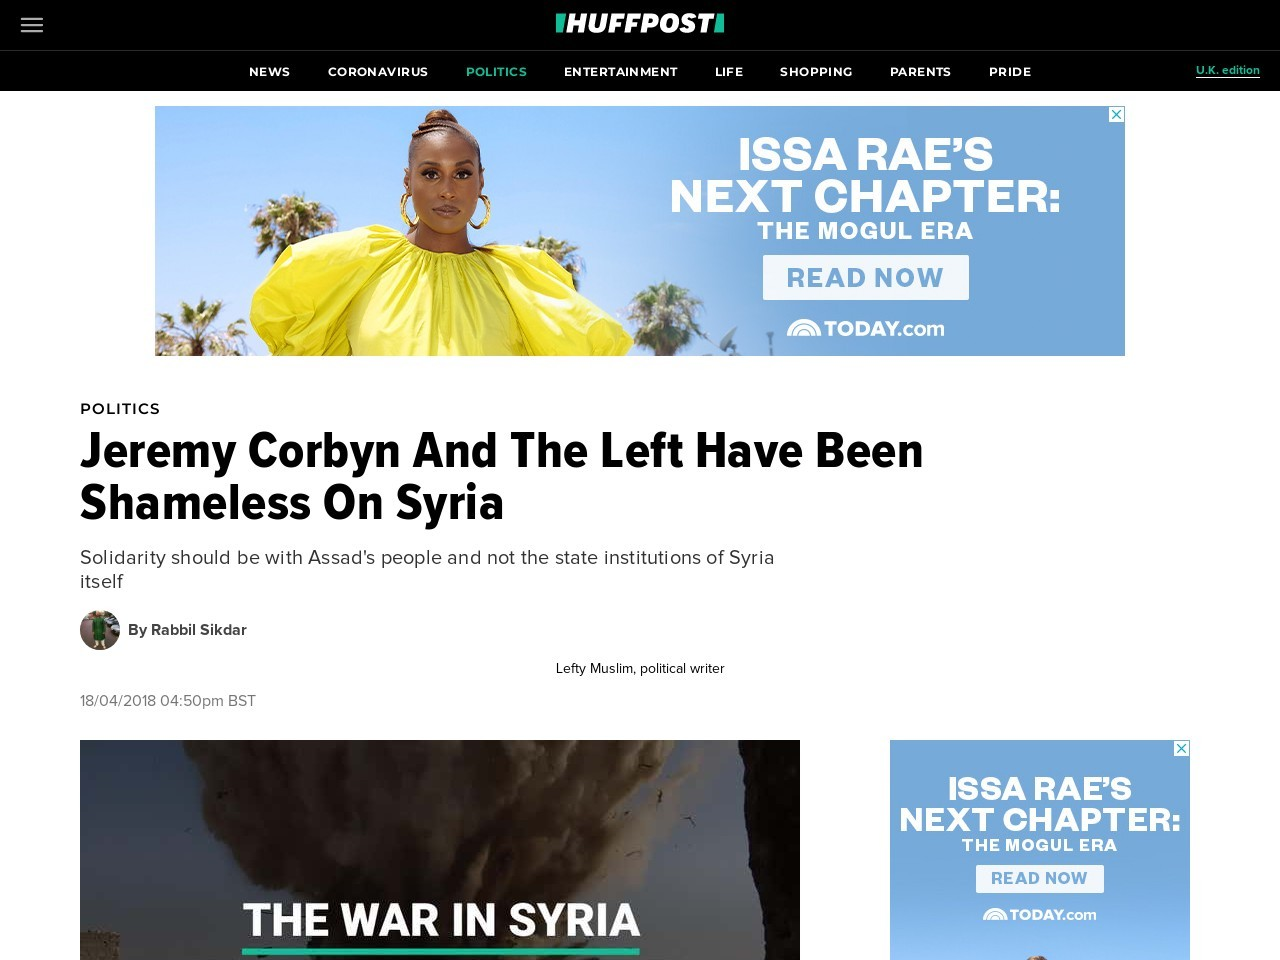 Jeremy Corbyn And The Left Have Been Shameless On Syria